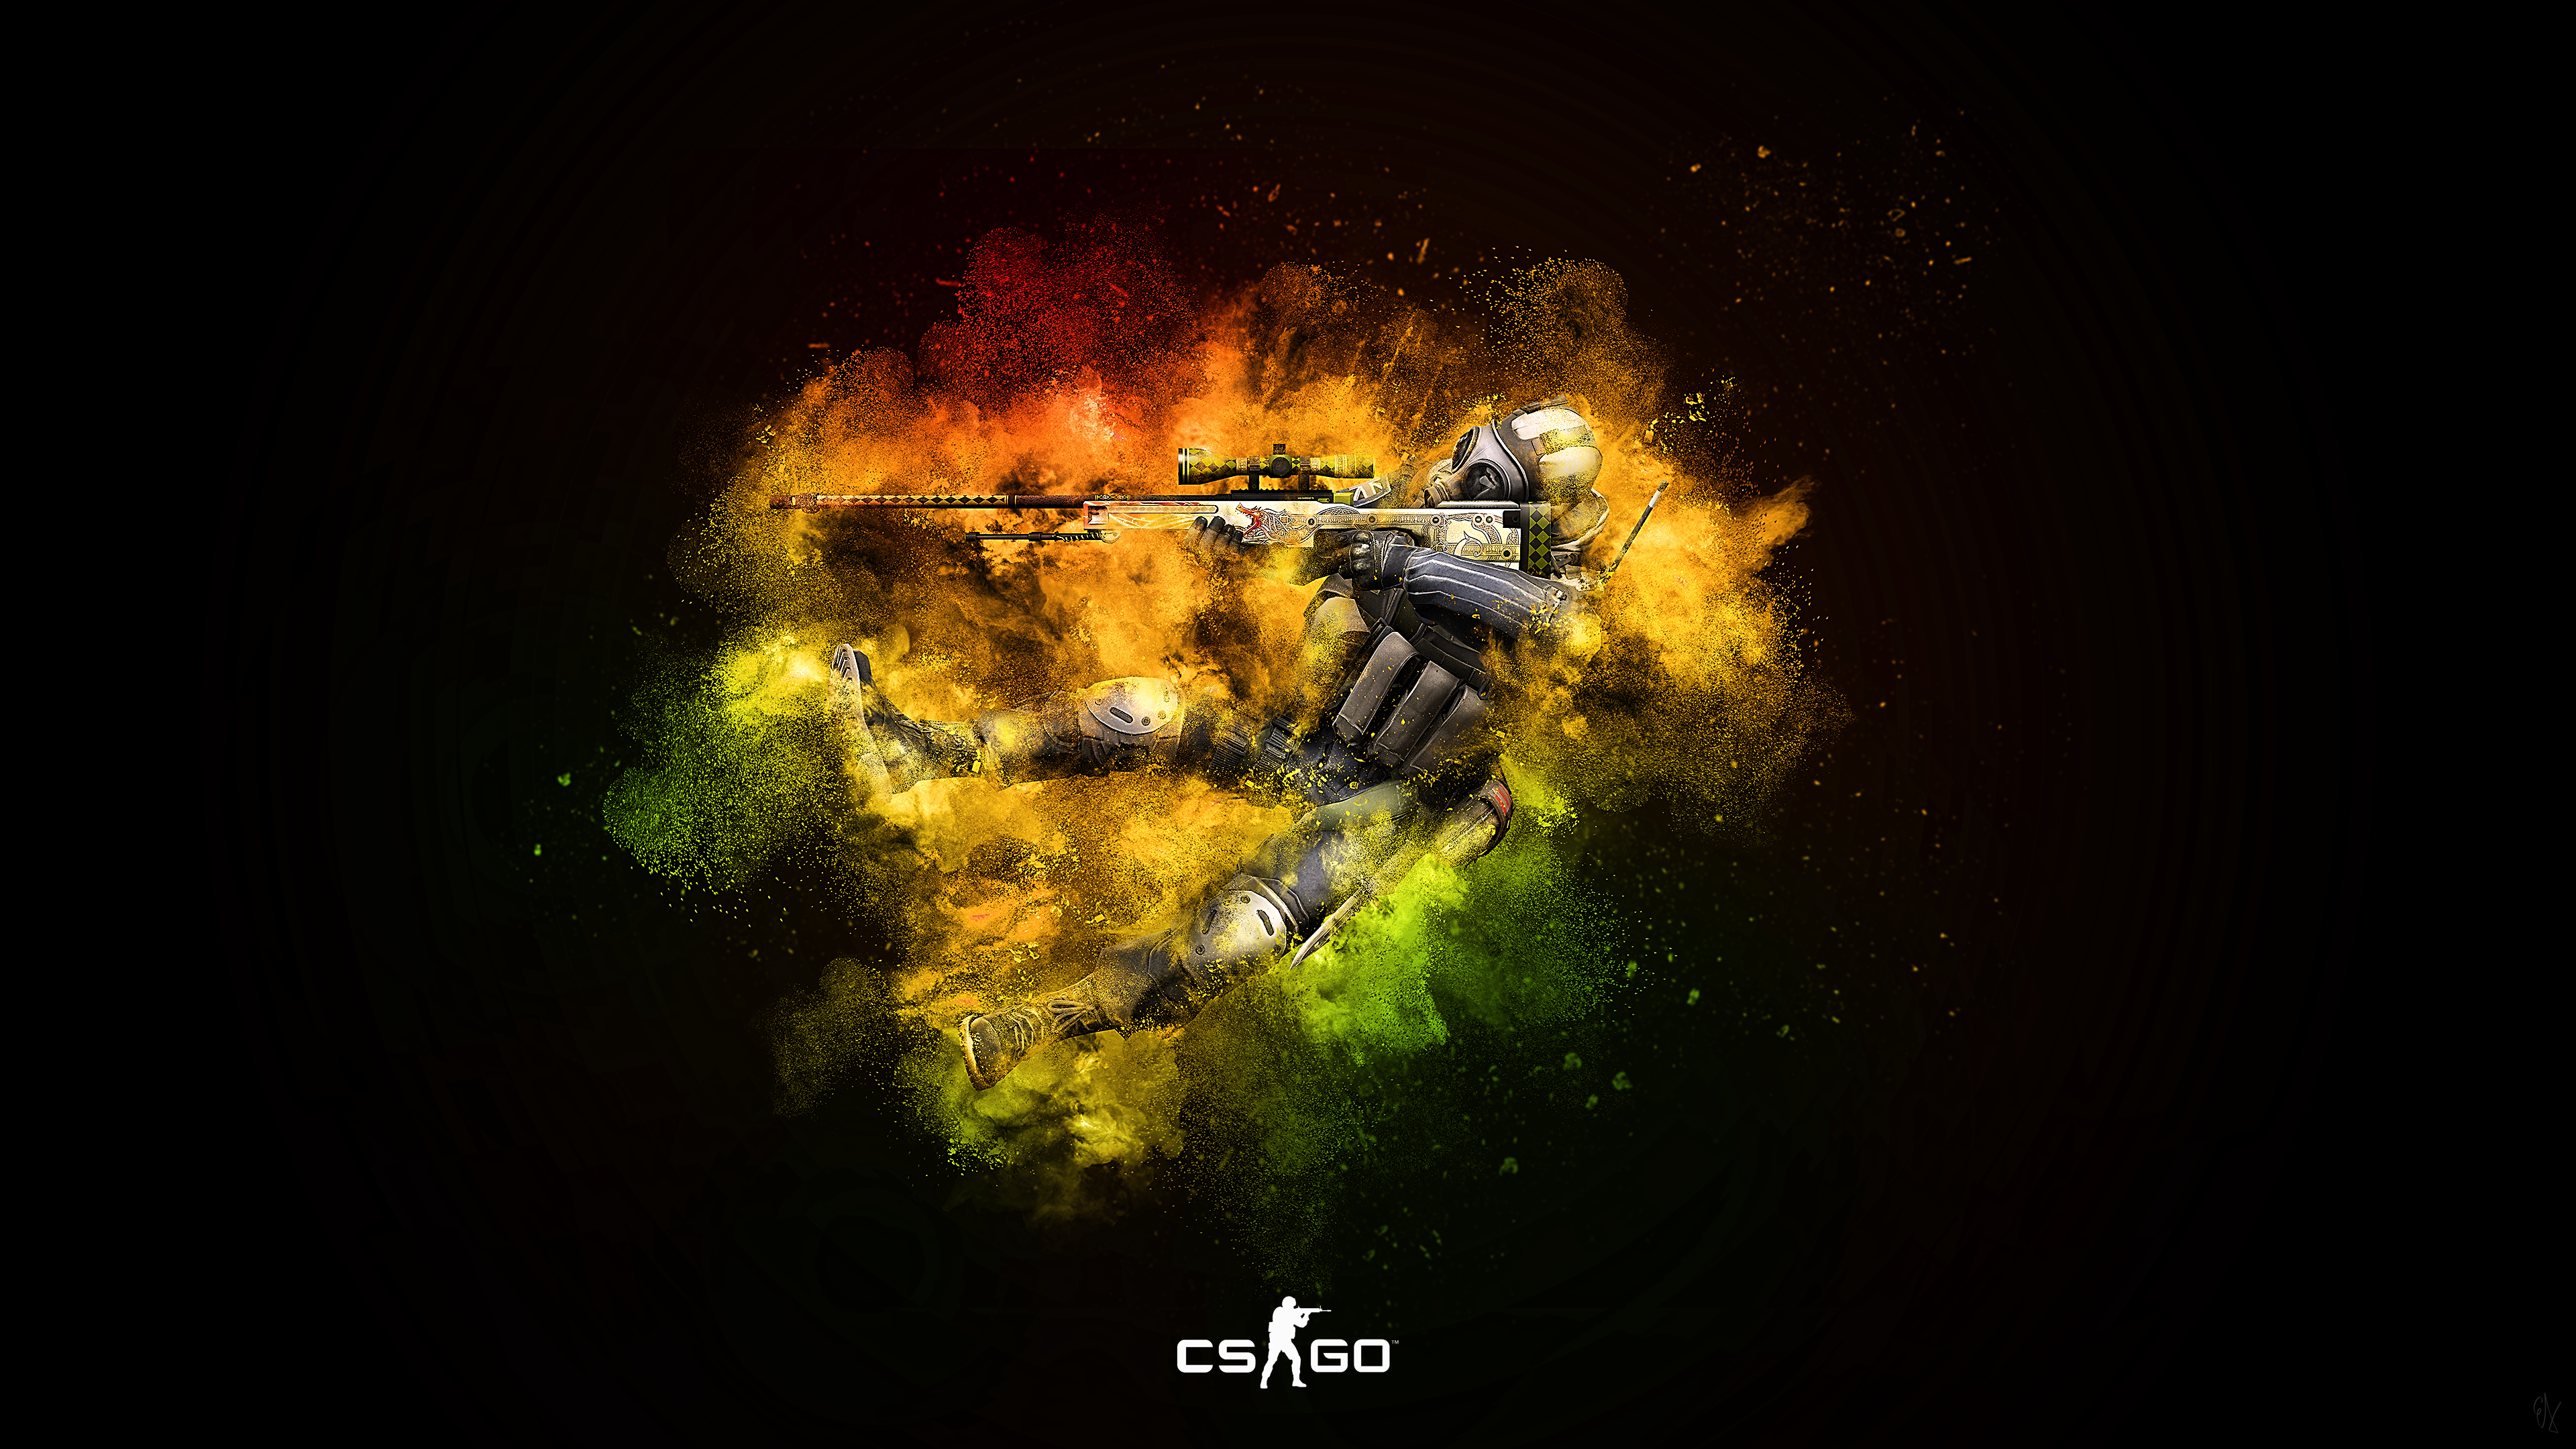 Imagine Csgo Wallpaper 4k Ultra Hd обои фон